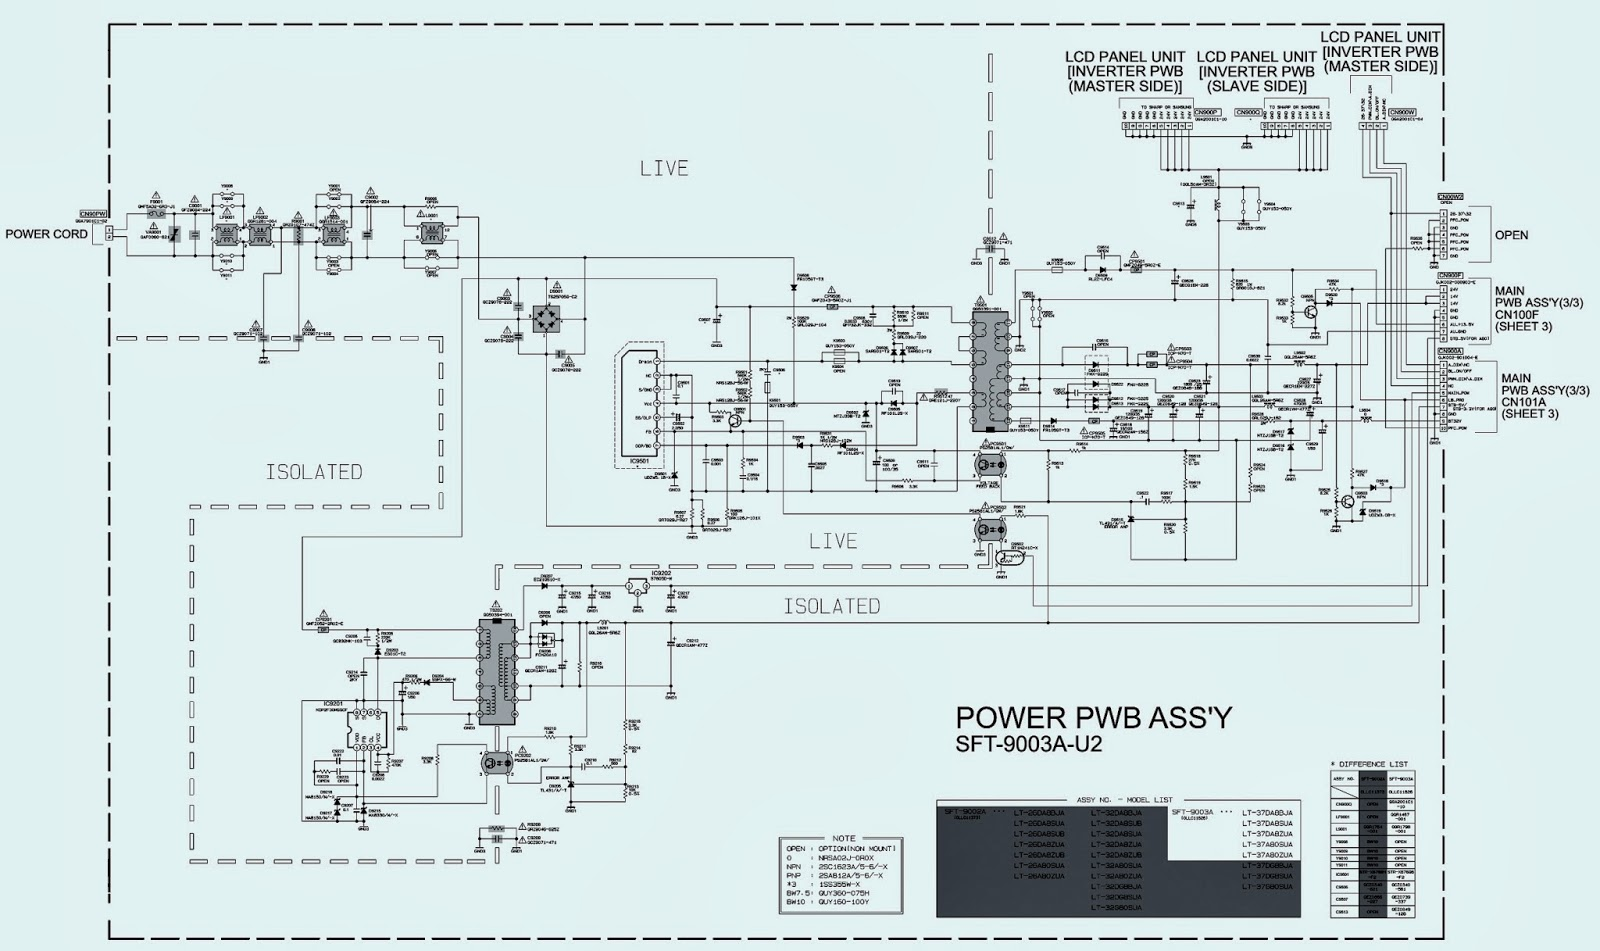 JVC LT-37A80SU, LT-37A80ZU - Power Supply (SMPS) - Circuit Diagram - LCD  INTEGRATED DIGITAL TELEVISION